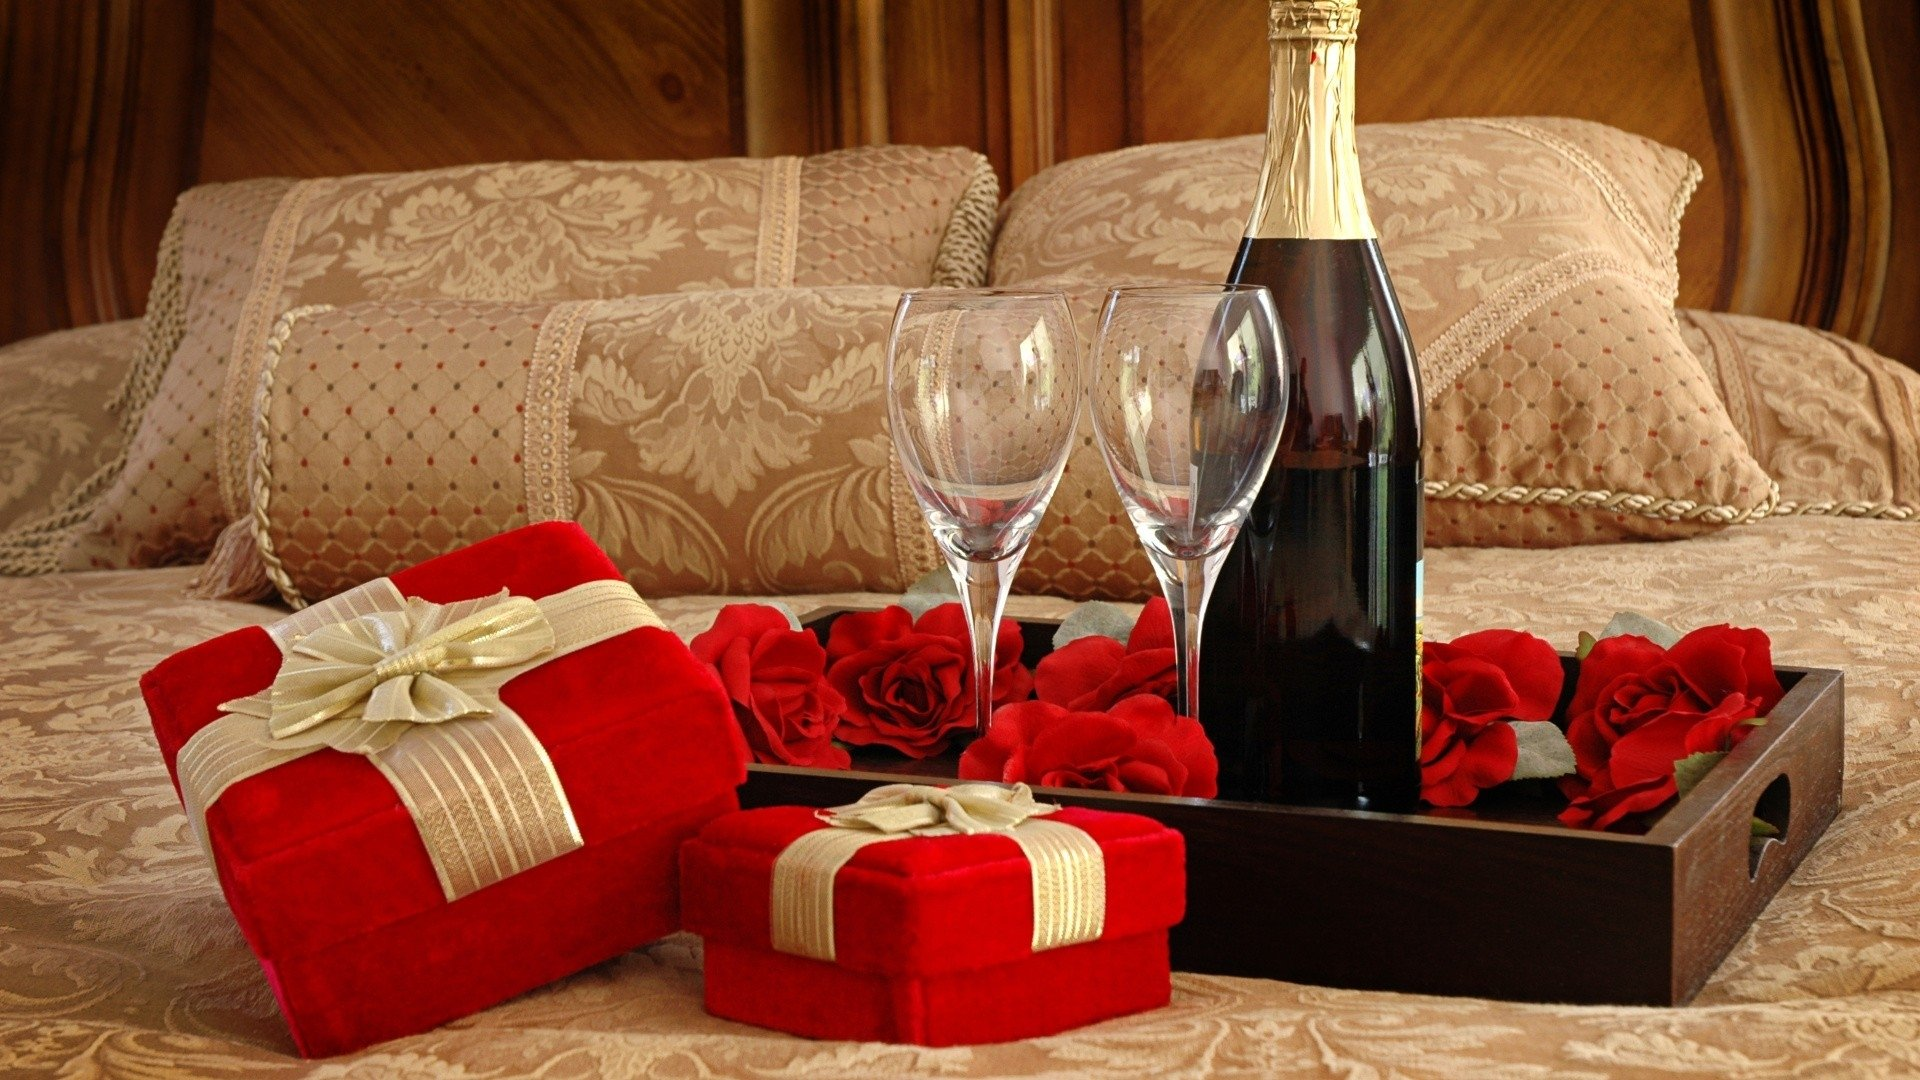 10 Famous Romantic Ideas For Valentines Day